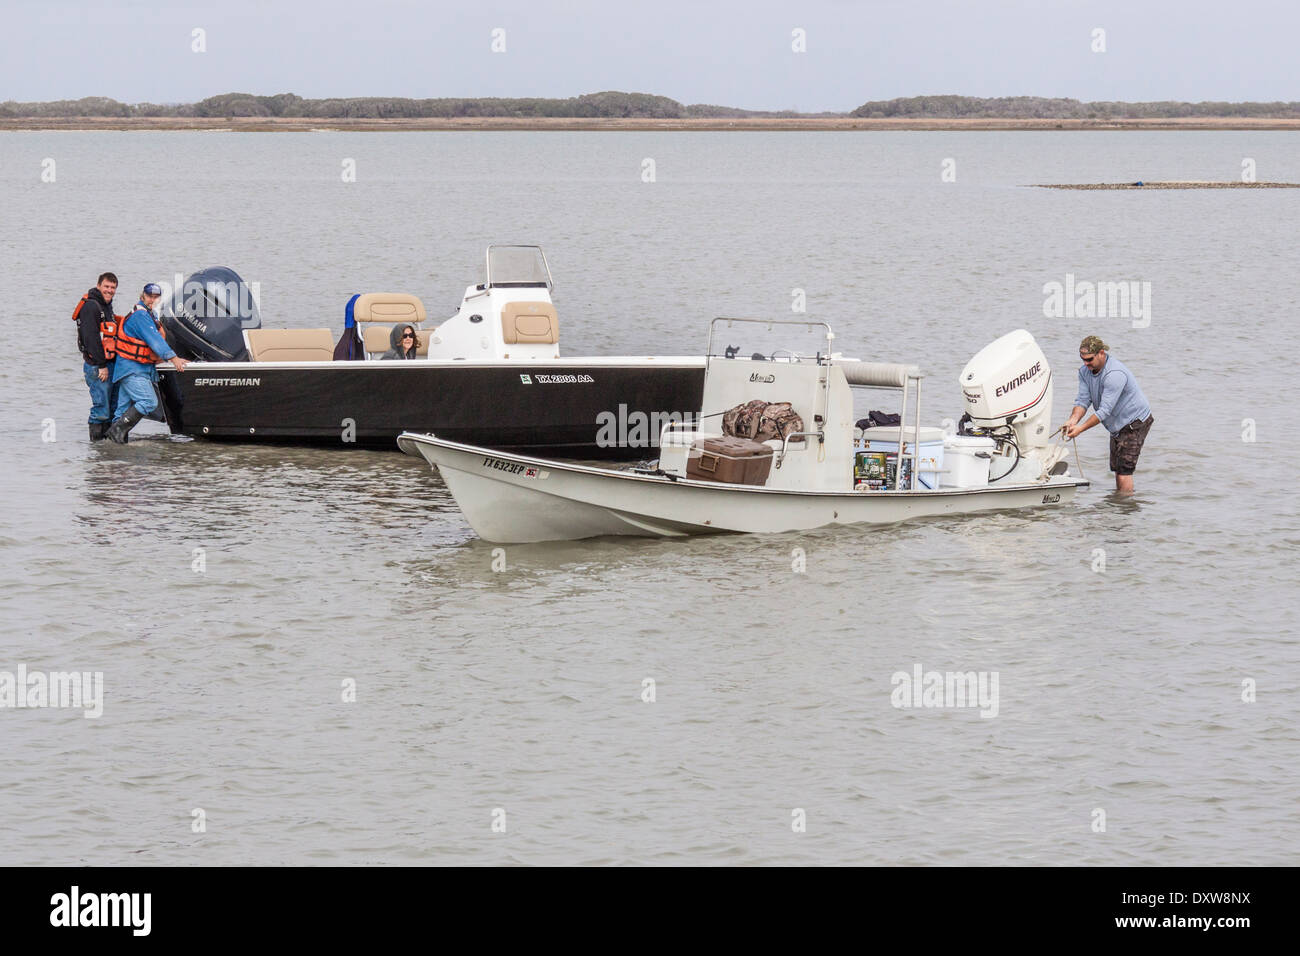 Stranded boaters in shallow waters of Aransas Pass National Wildlife Refuge - Stock Image